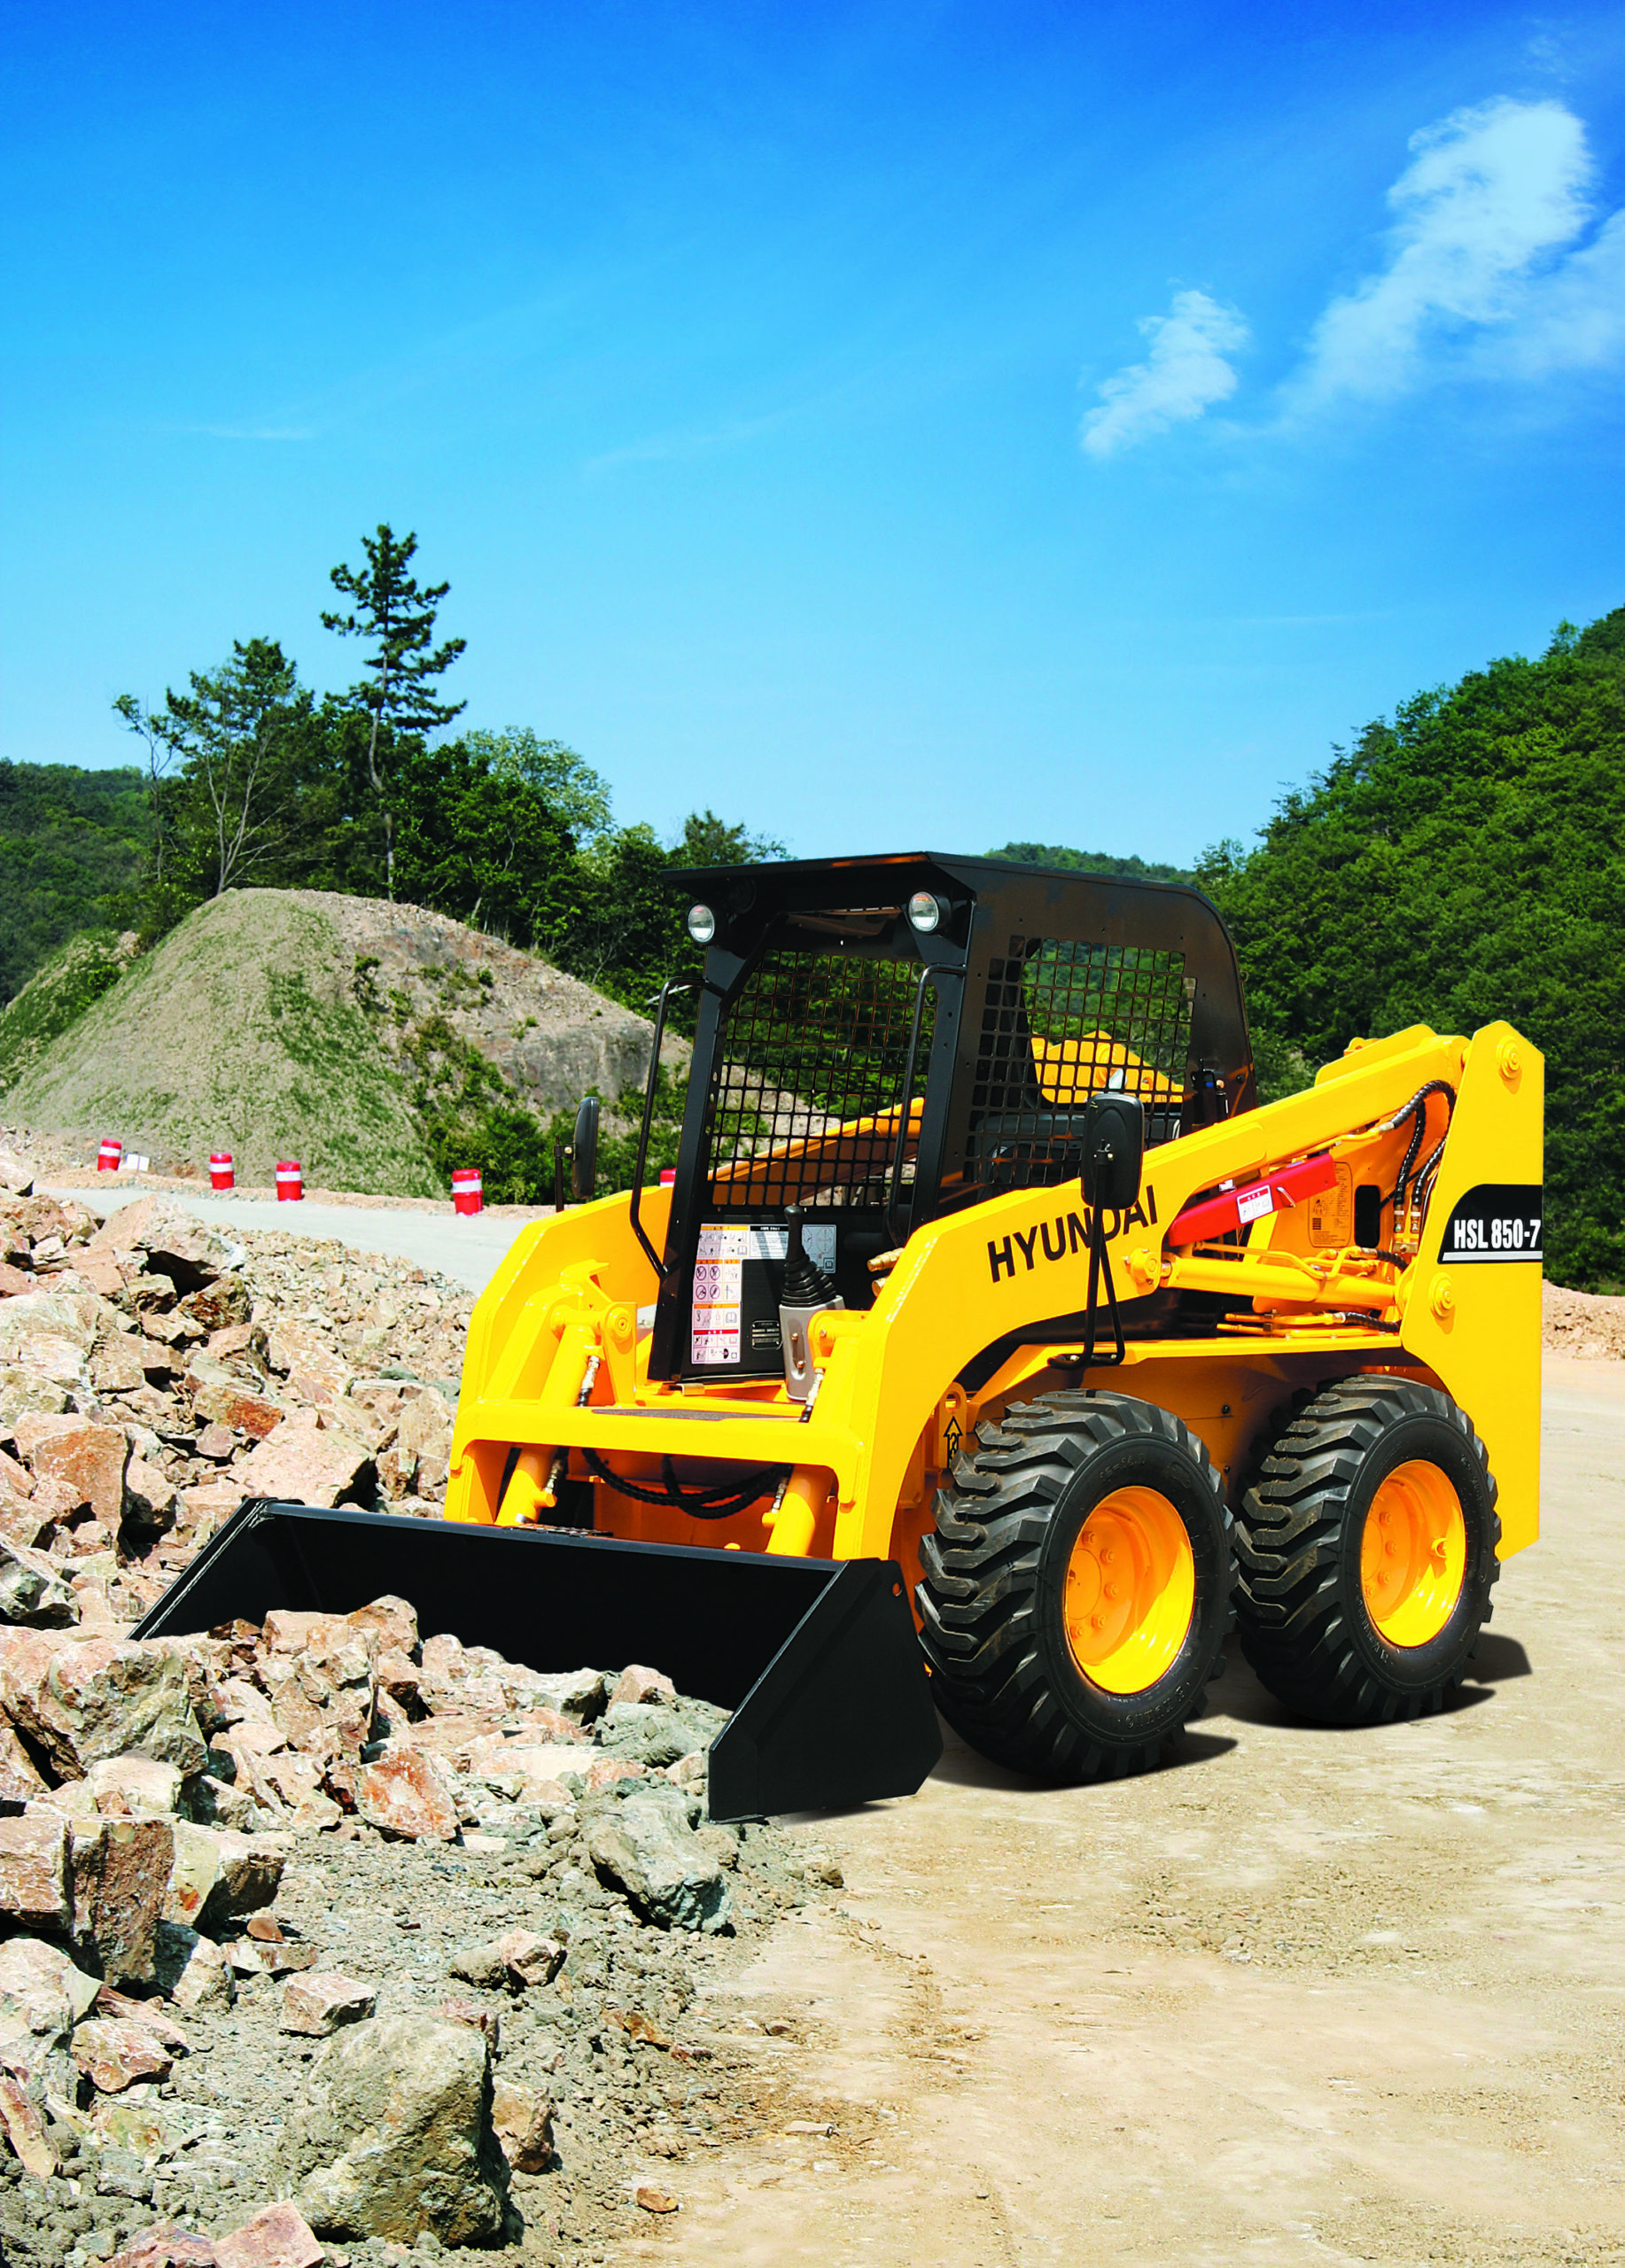 HPE Africa's robust range of Hyundai construction equipment for municipalities